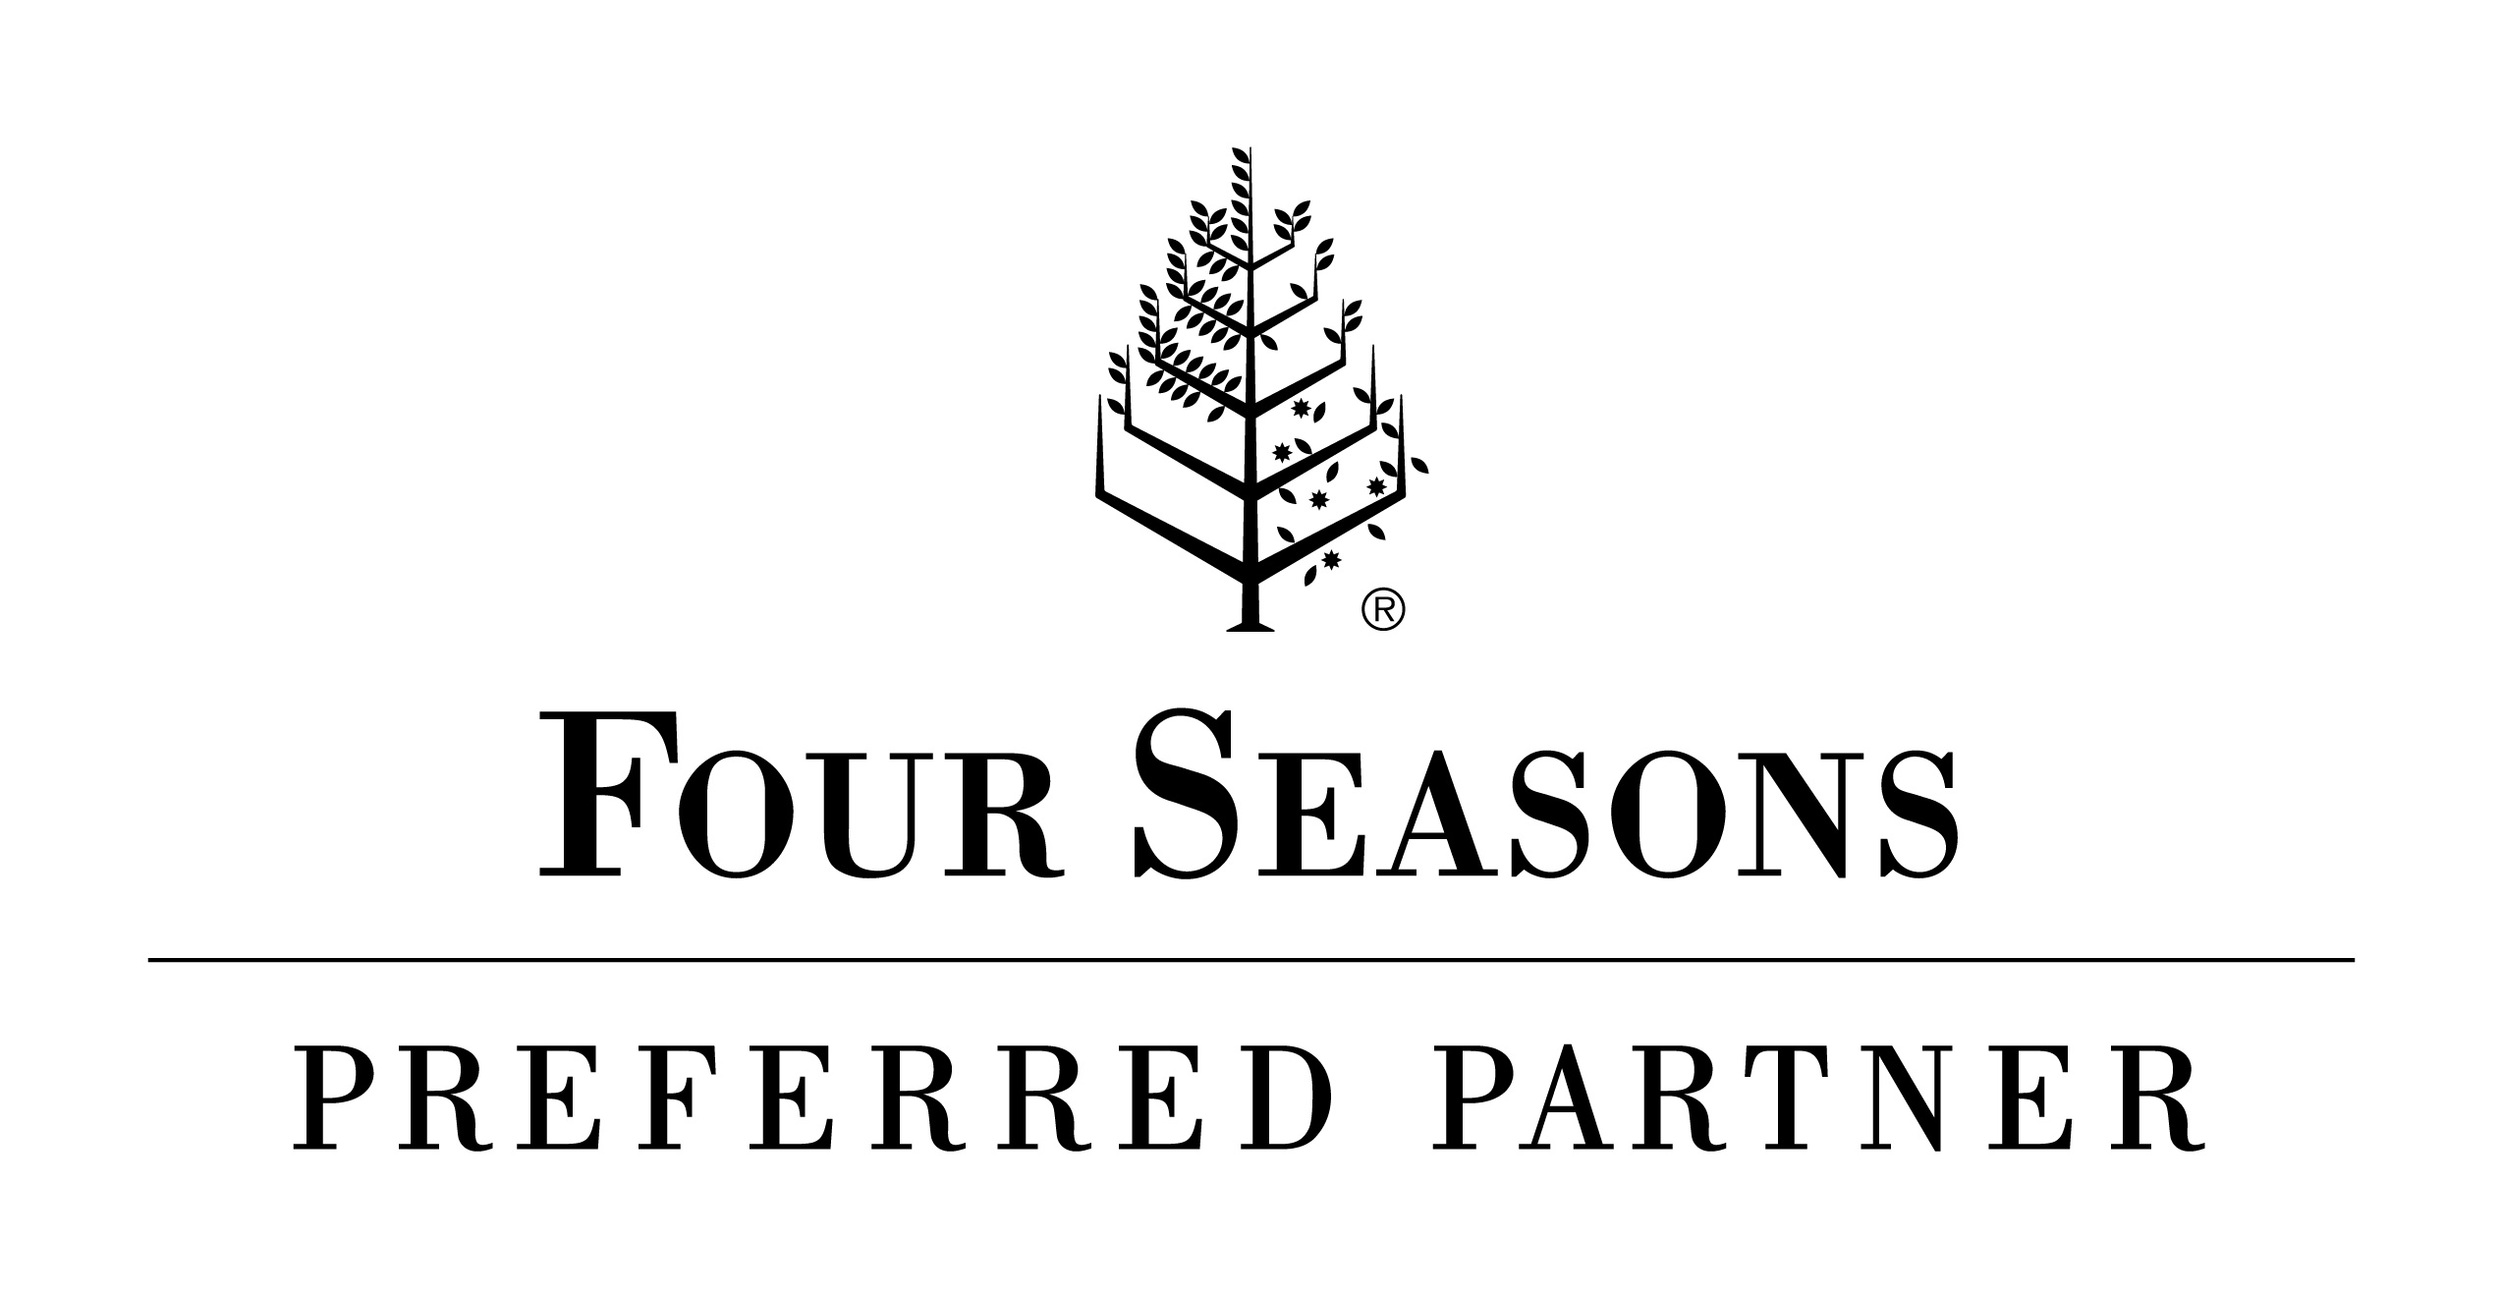 As a   Four Seasons Preferred Partner   agency, Elite Travel International clients enjoy breakfast-inclusive rates, $100 hotel credit at EVERY Four Seasons property worldwide, free WiFi in suites and customized VIP amenities. Booking through a Preferred Partner agency is the only way to receive these perks at every Four Seasons hotel around the globe.